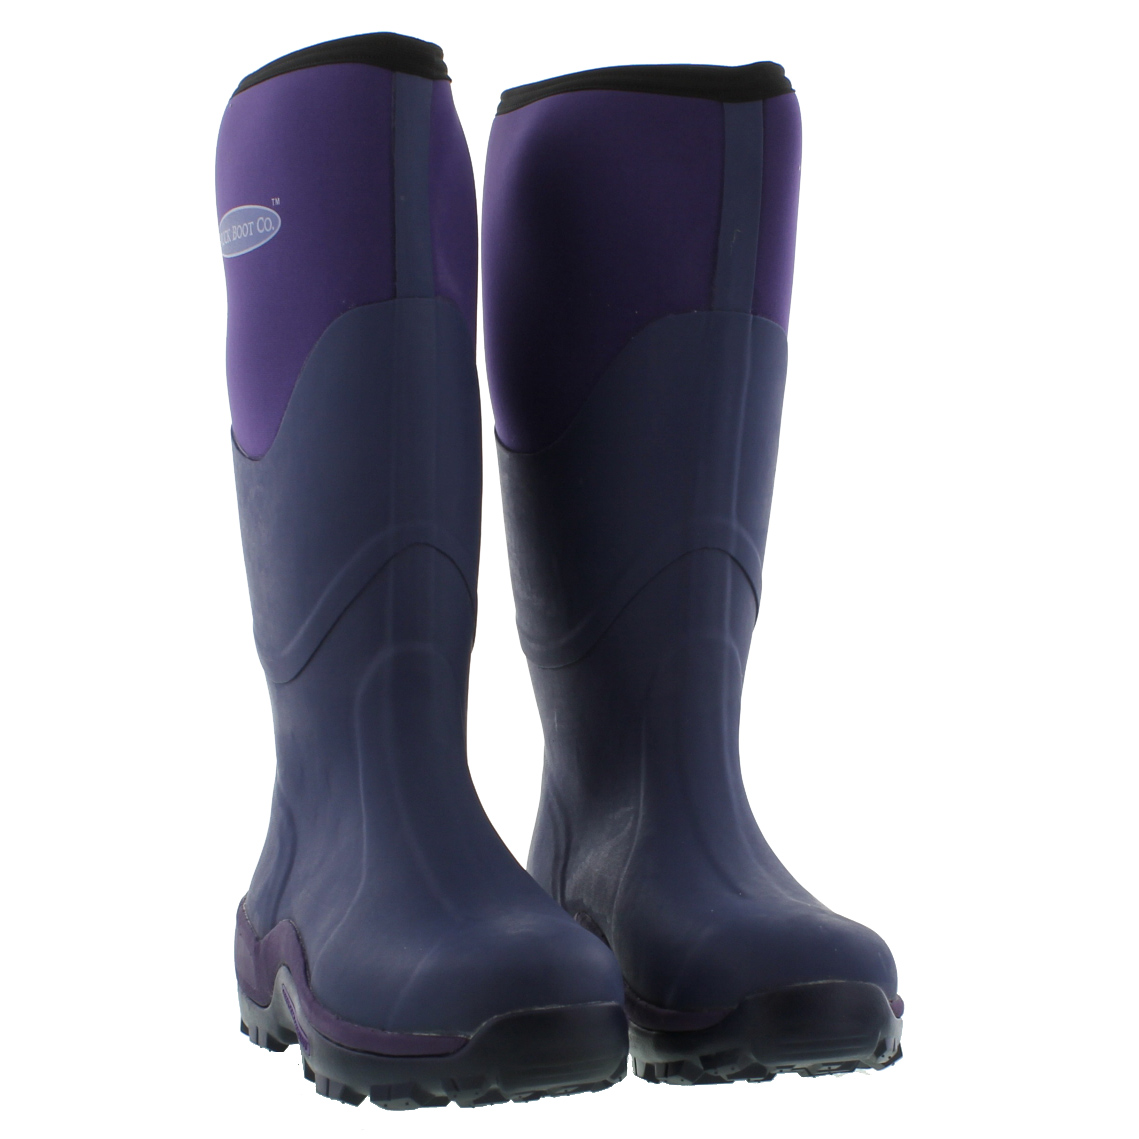 Muck Boots Greta Womens Wellies Neoprene Wellington Boots Size UK